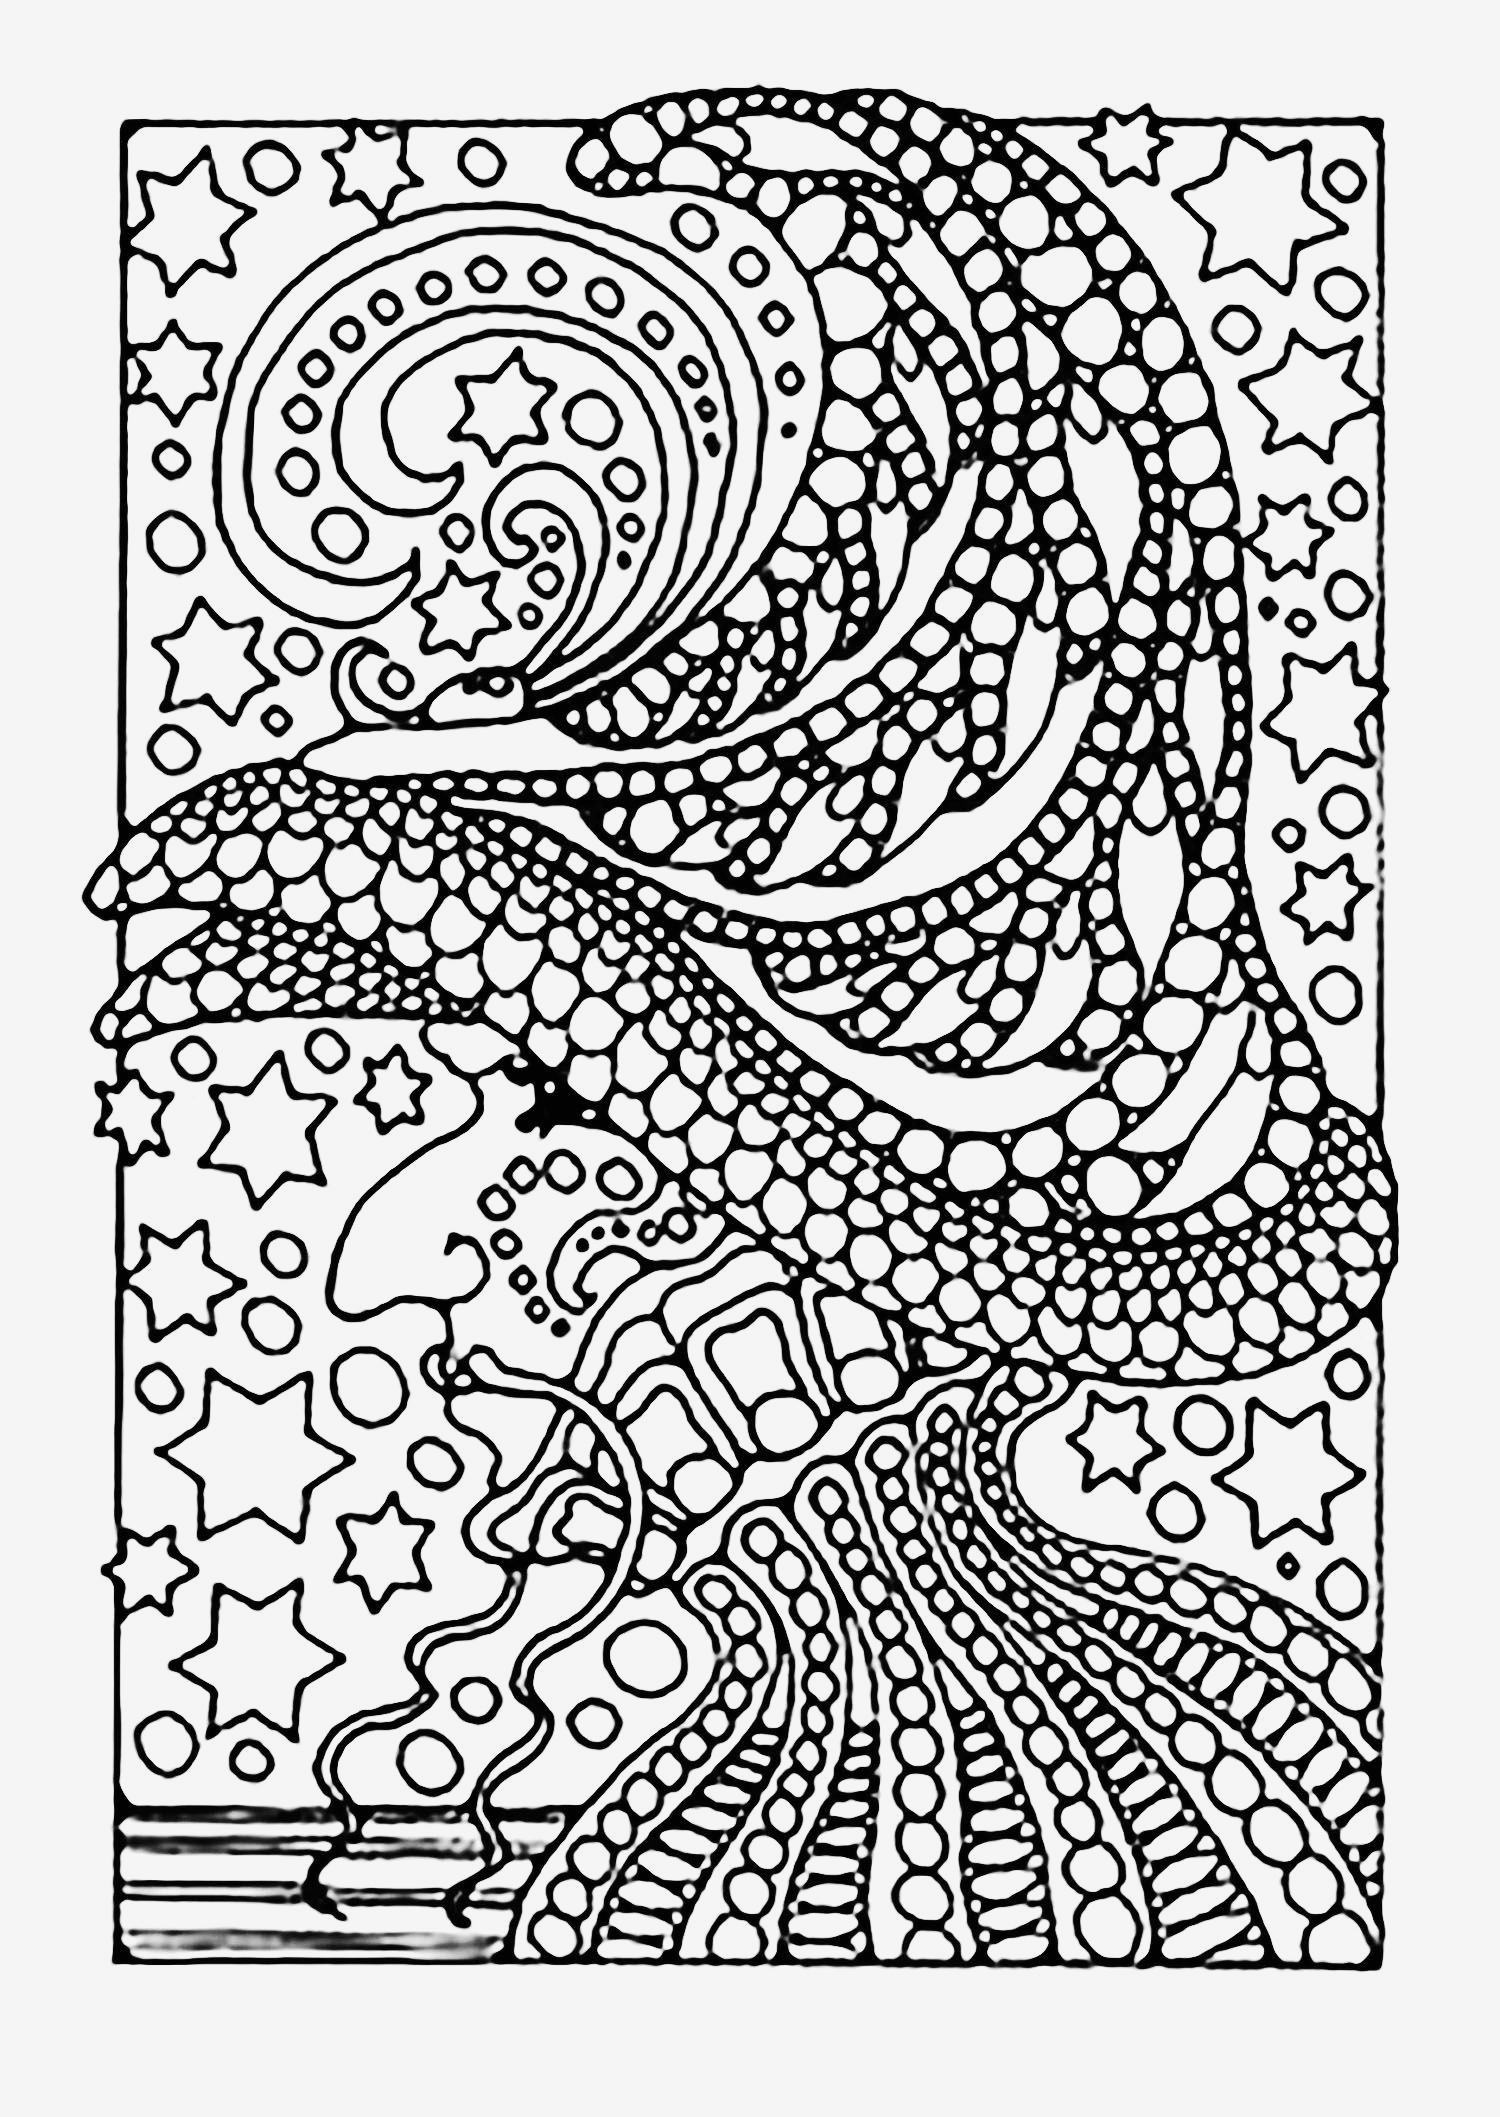 cool printable coloring pages Collection-Flame Coloring Page Free Printable Coloring Pags Best Everything Pages Lovely Page 0d Free Image 9-f